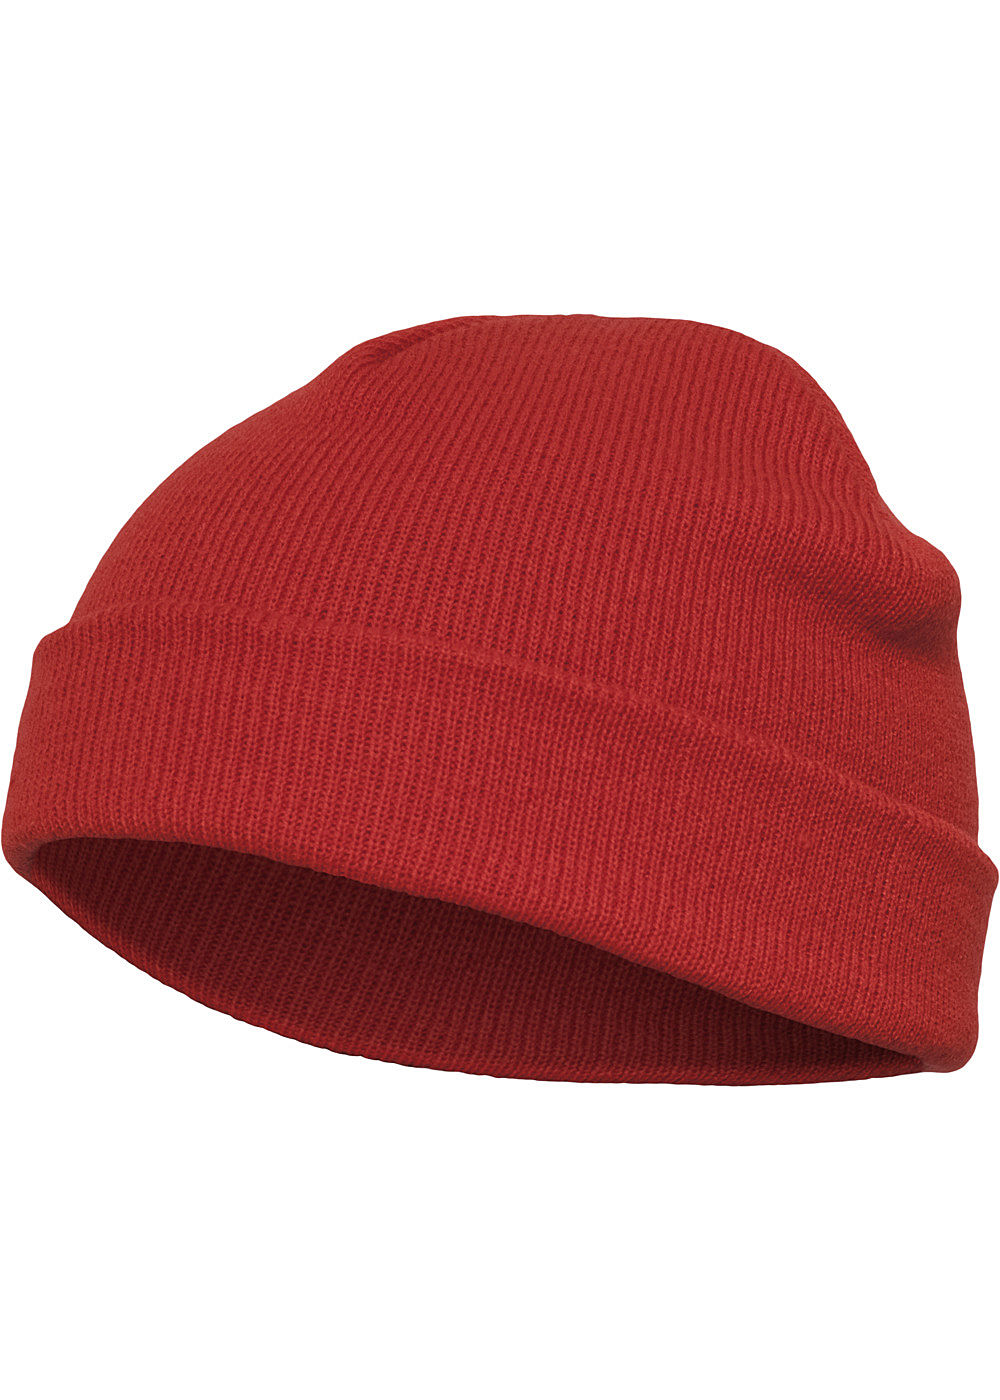 Seventyseven Lifestyle TB Basic Fisherman Beanie Strickmütze rot - Art.-Nr.: 19104580-OS-RE